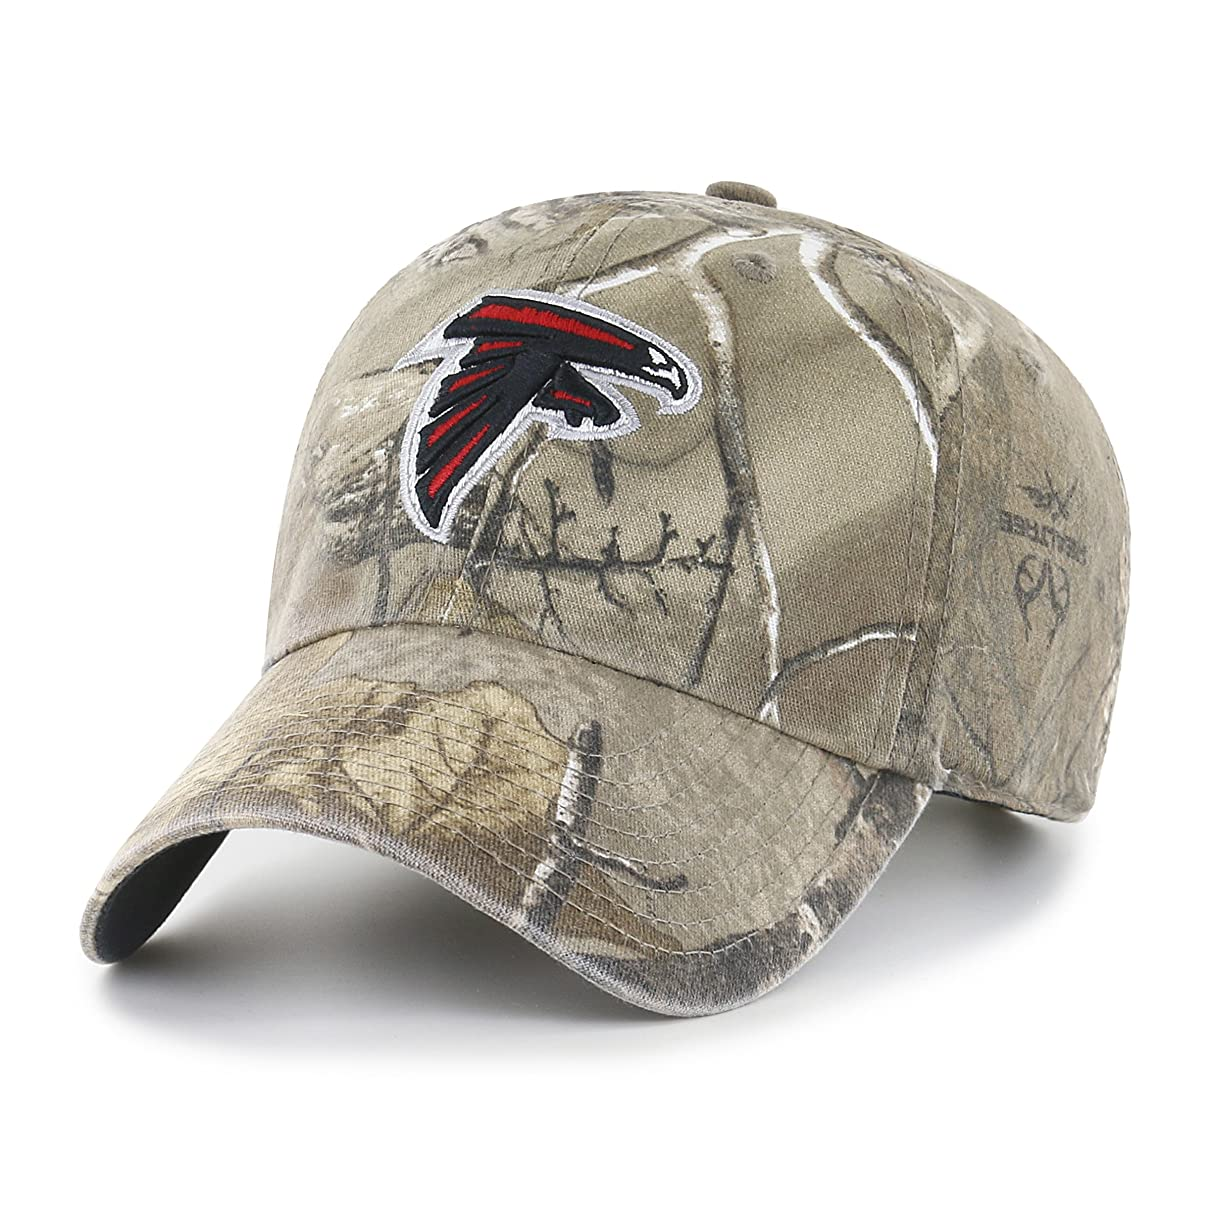 OTS NFL Adult Men's NFL Challenger Adjustable Hat